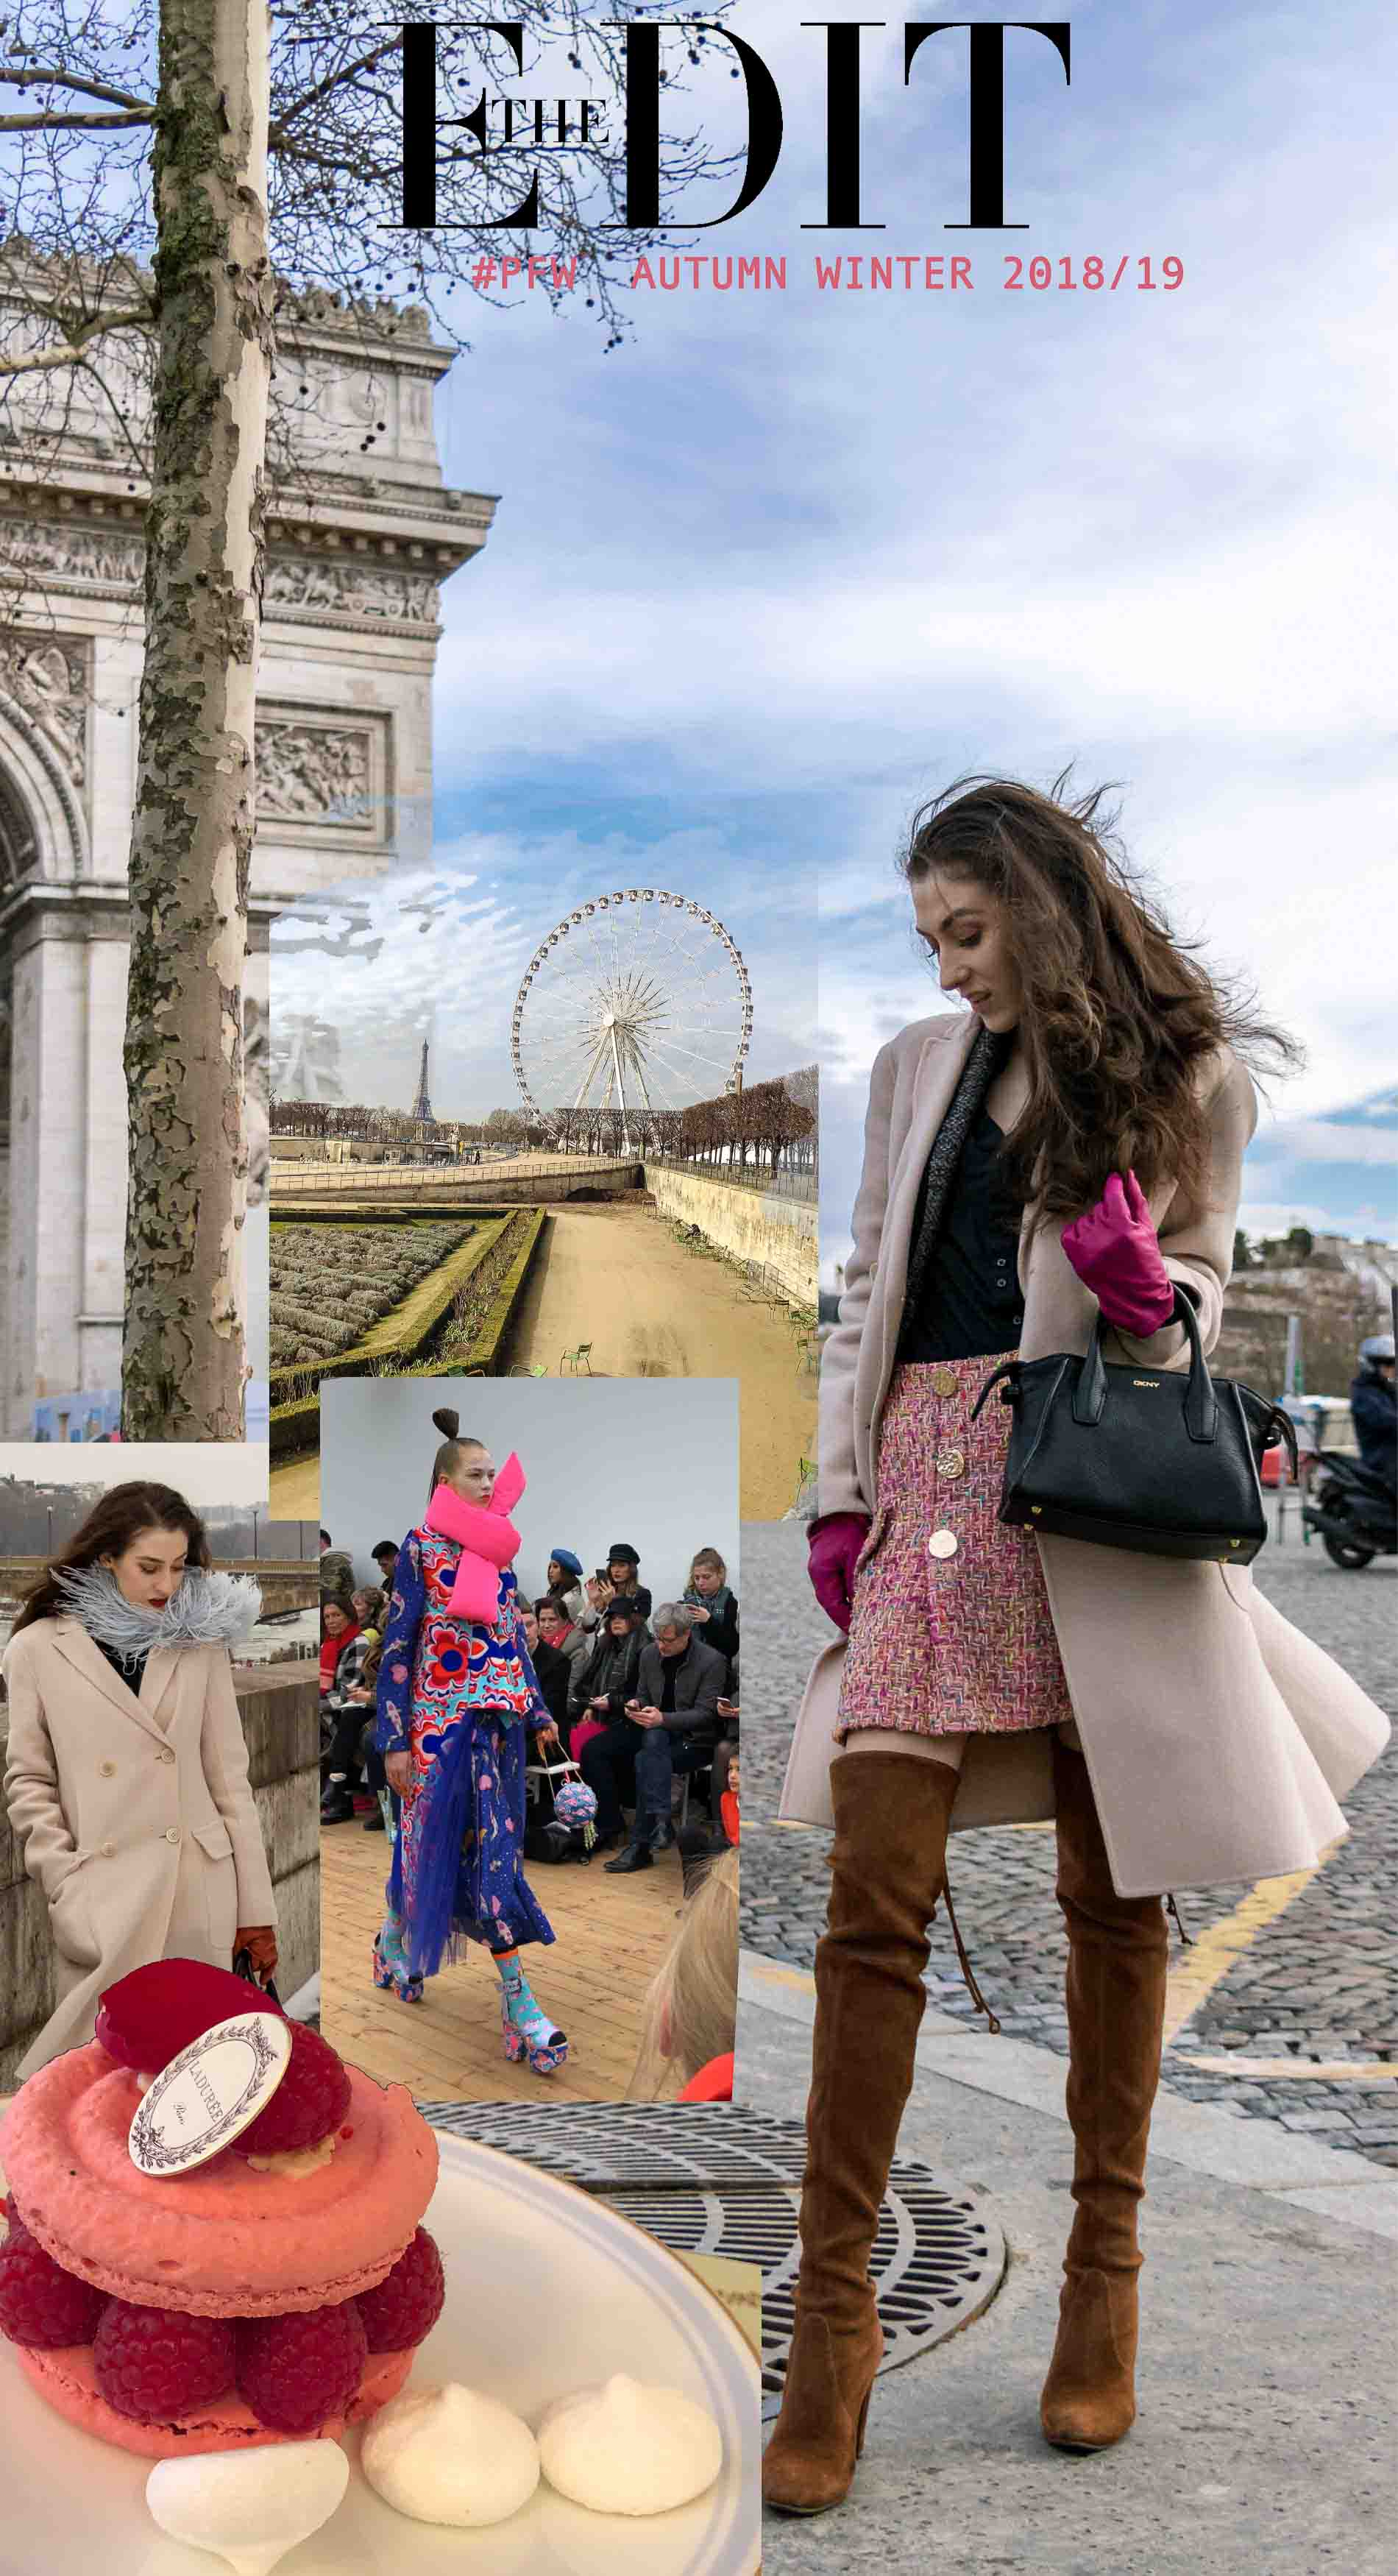 Fashion Blogger Veronika Lipar of Brunette from Wall Street writing about the latest fashion trends from autumn winter 2018/19 Paris fashion week